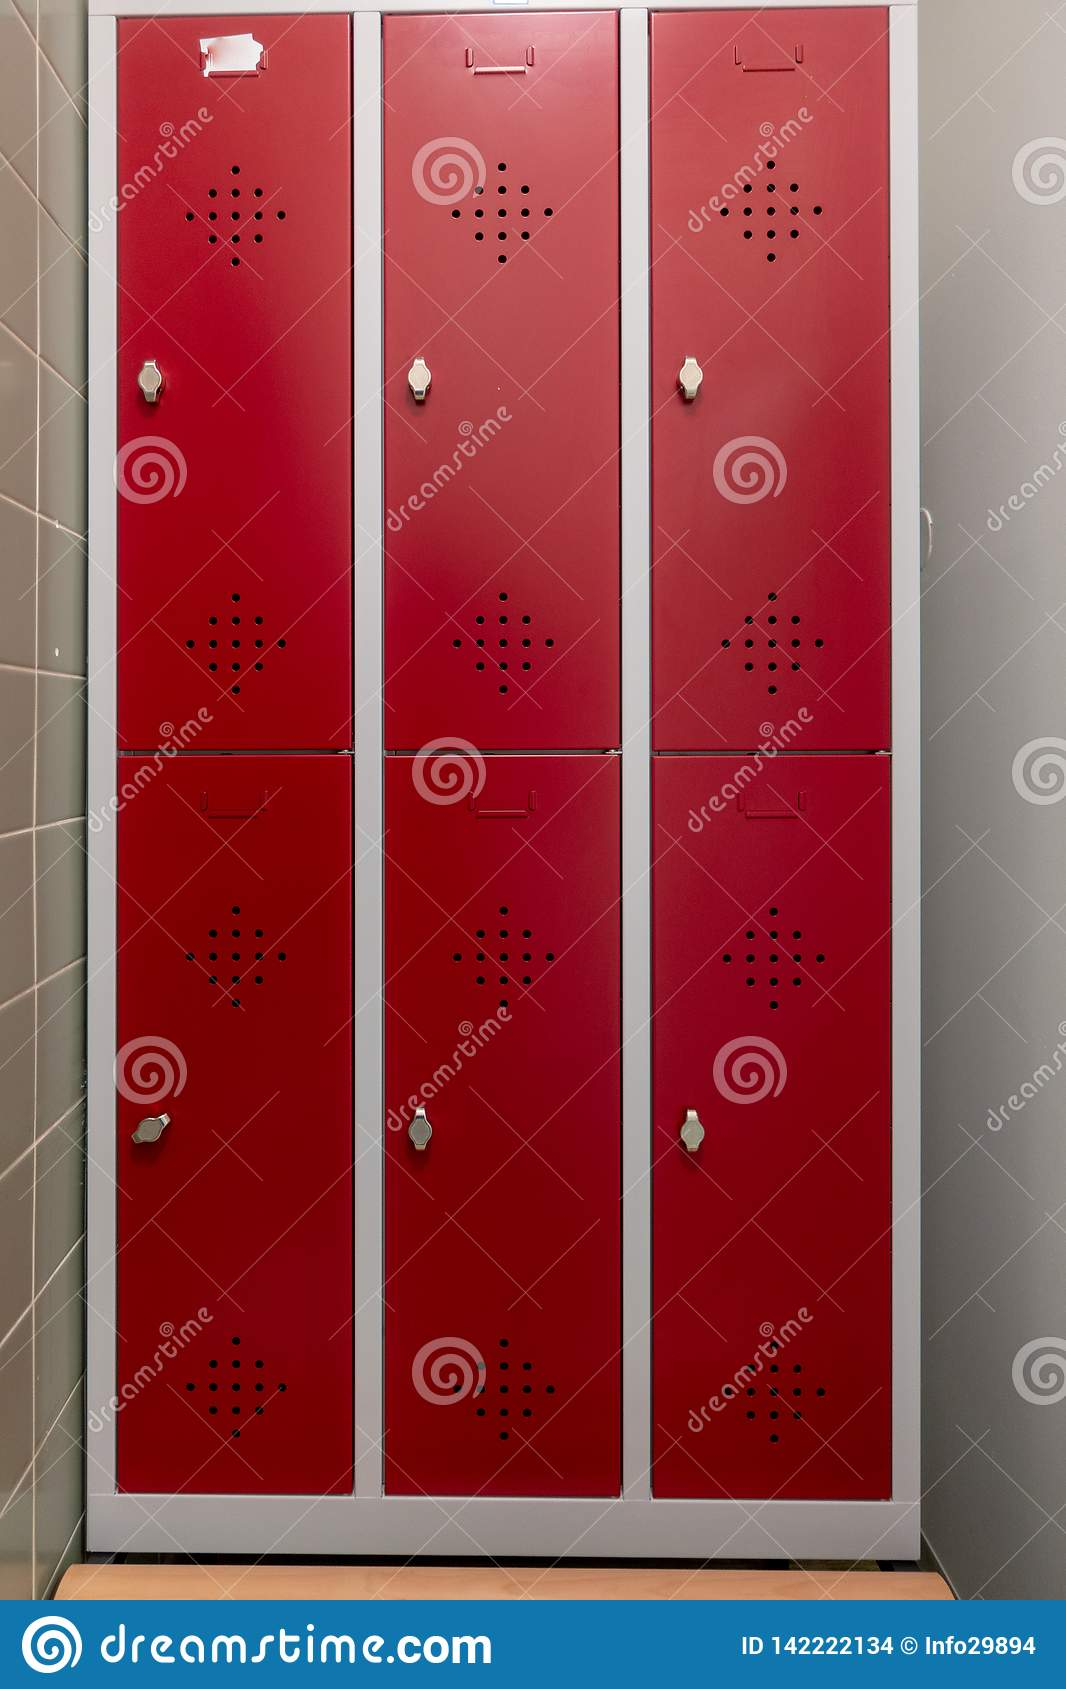 Changing lockers with red doors